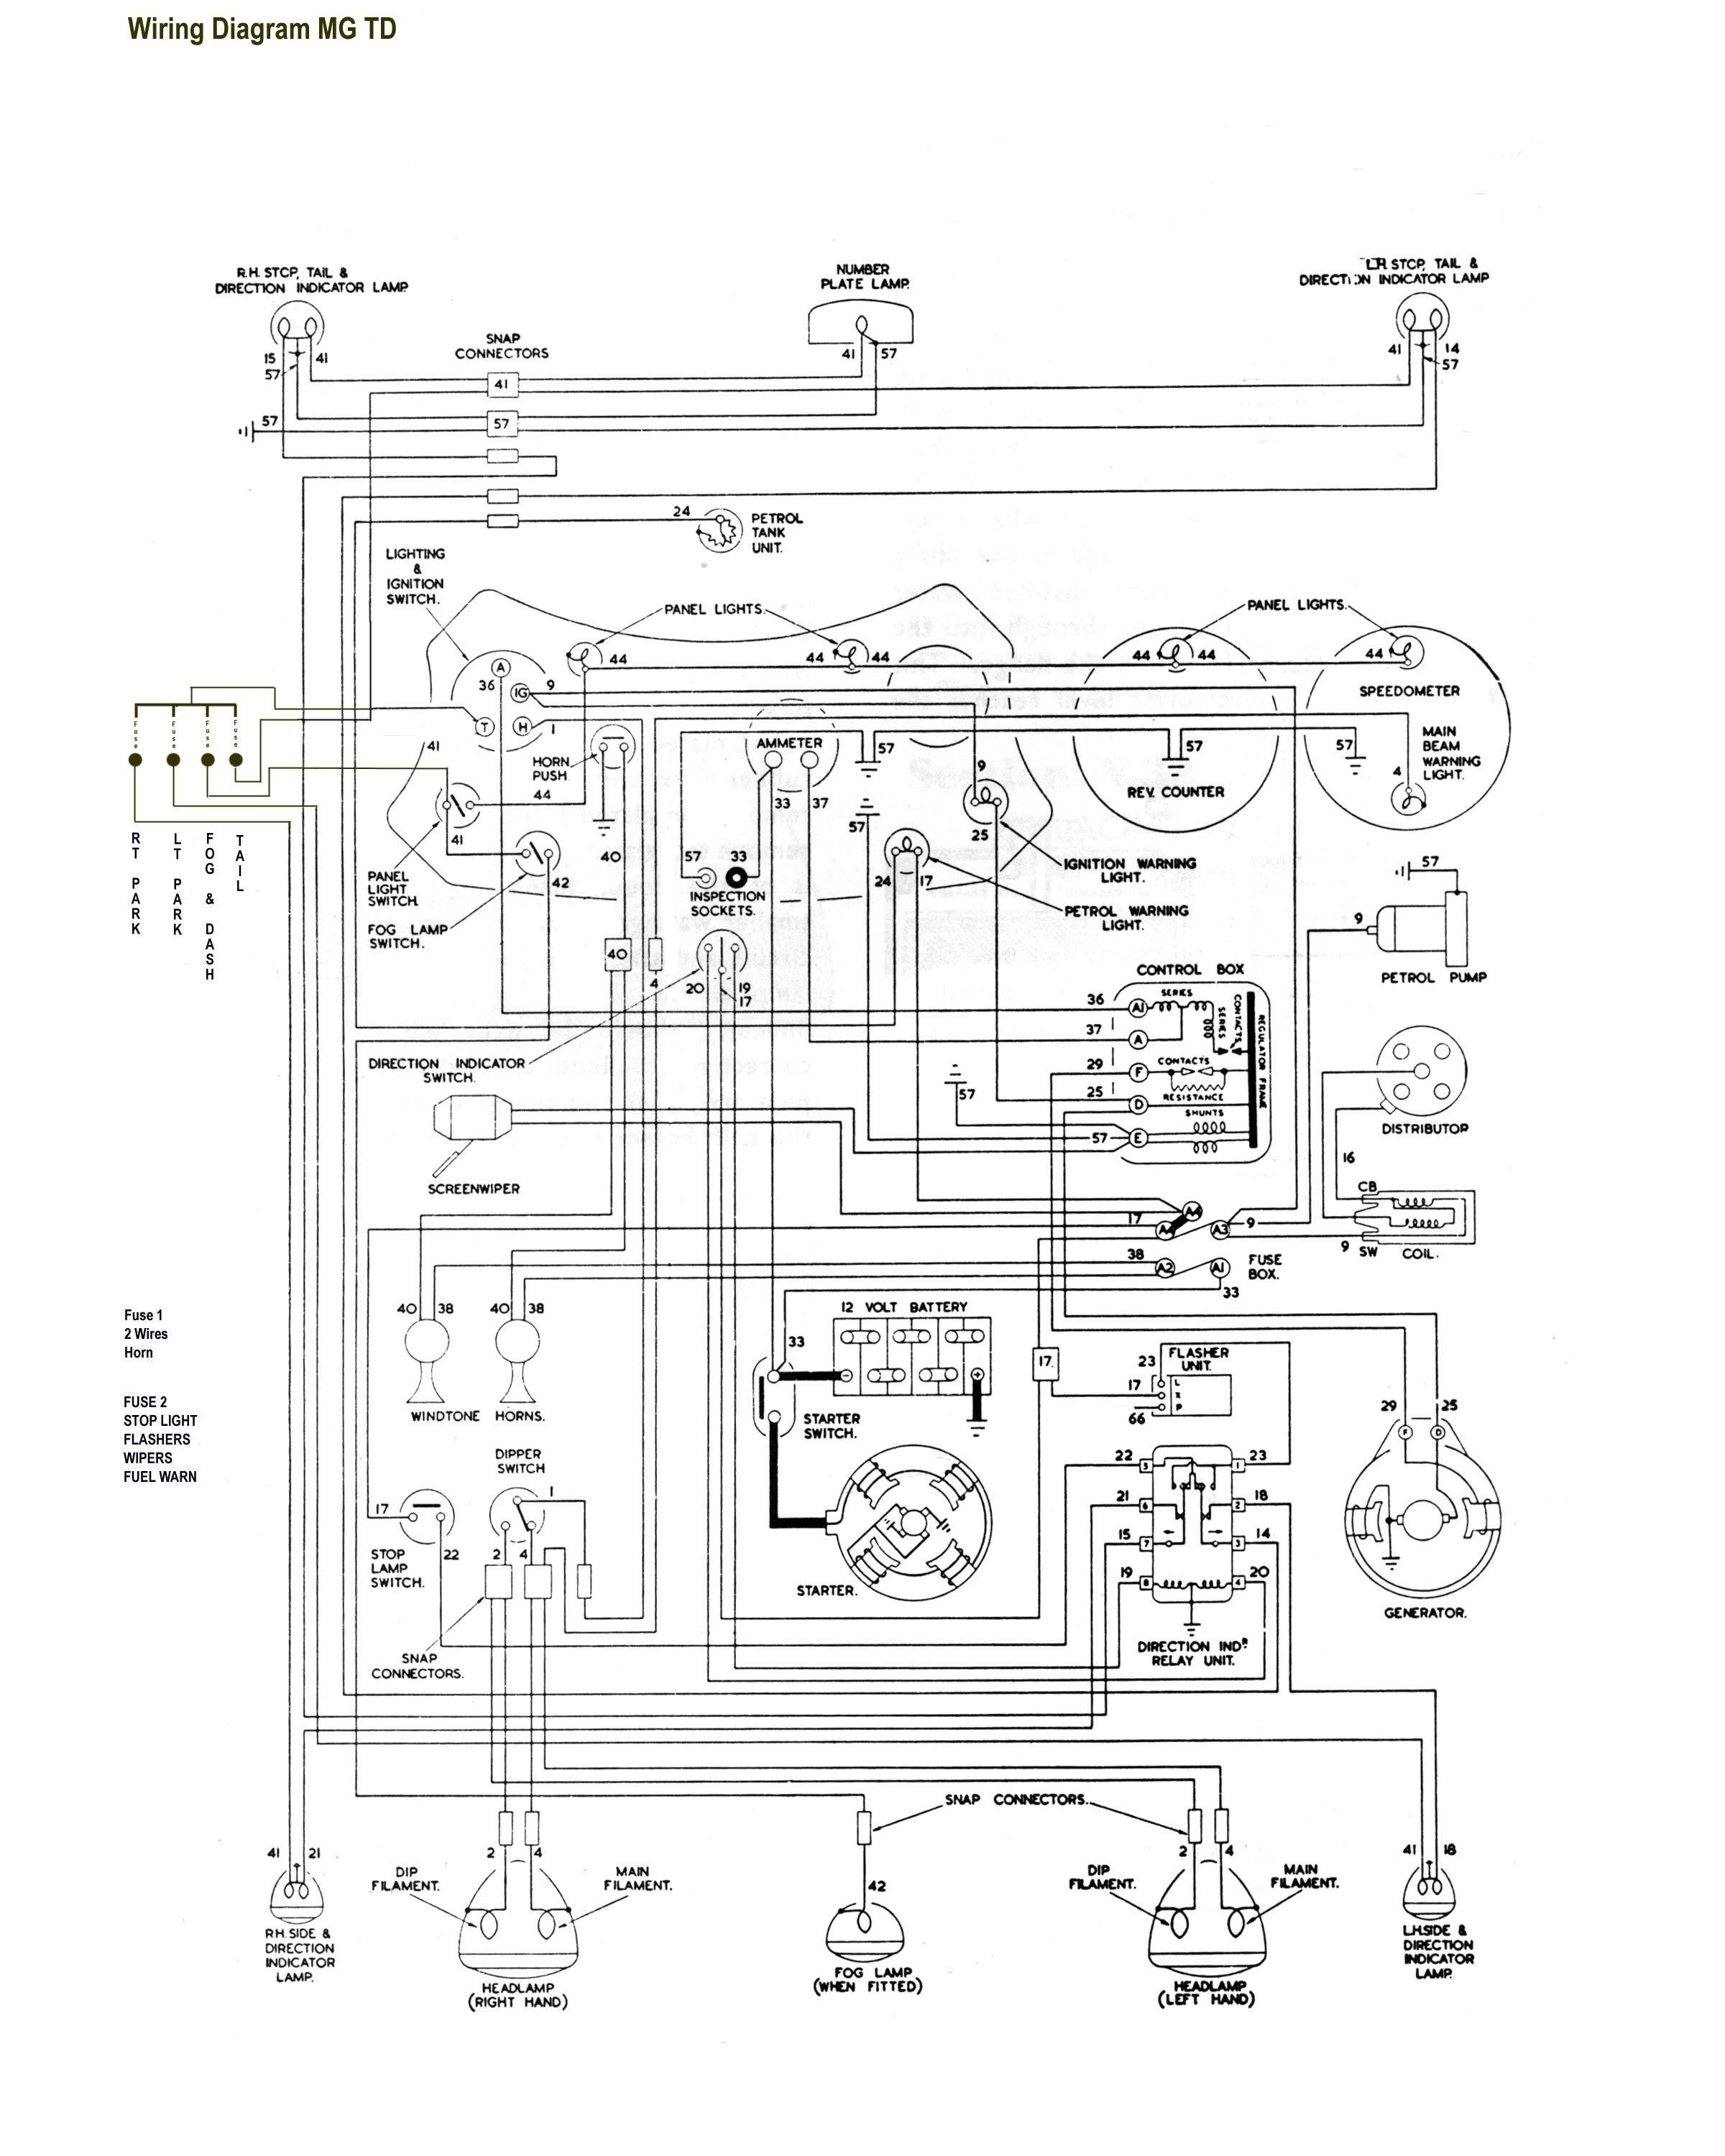 MerzWiring mg tf wiring diagram mg tc wiring diagram \u2022 free wiring diagrams  at n-0.co